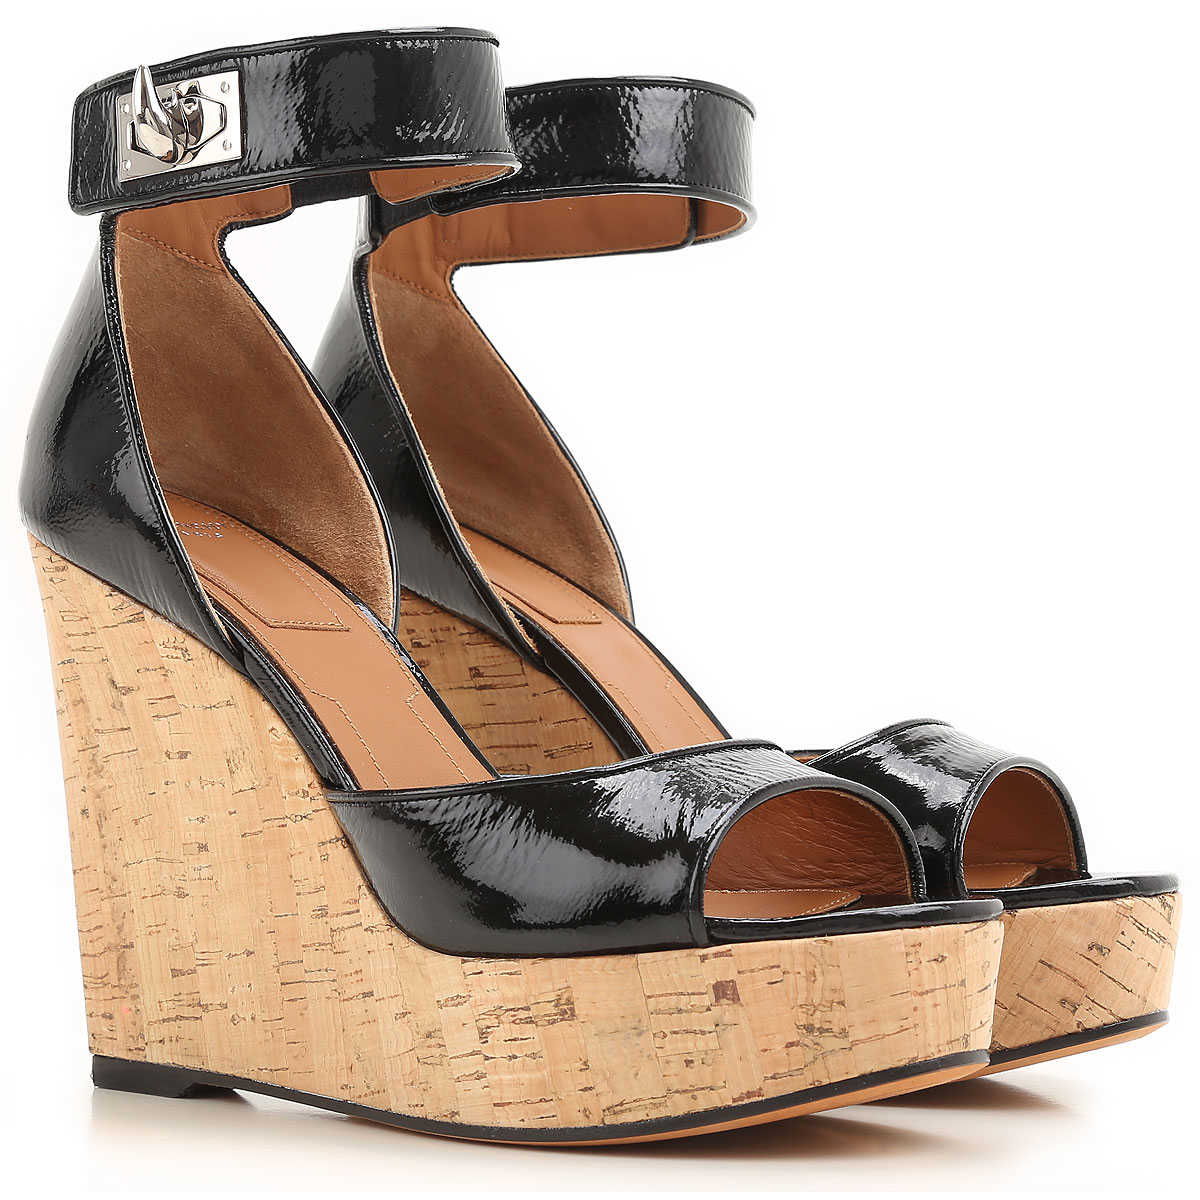 Givenchy Wedges for Women On Sale in Outlet Black SE - GOOFASH